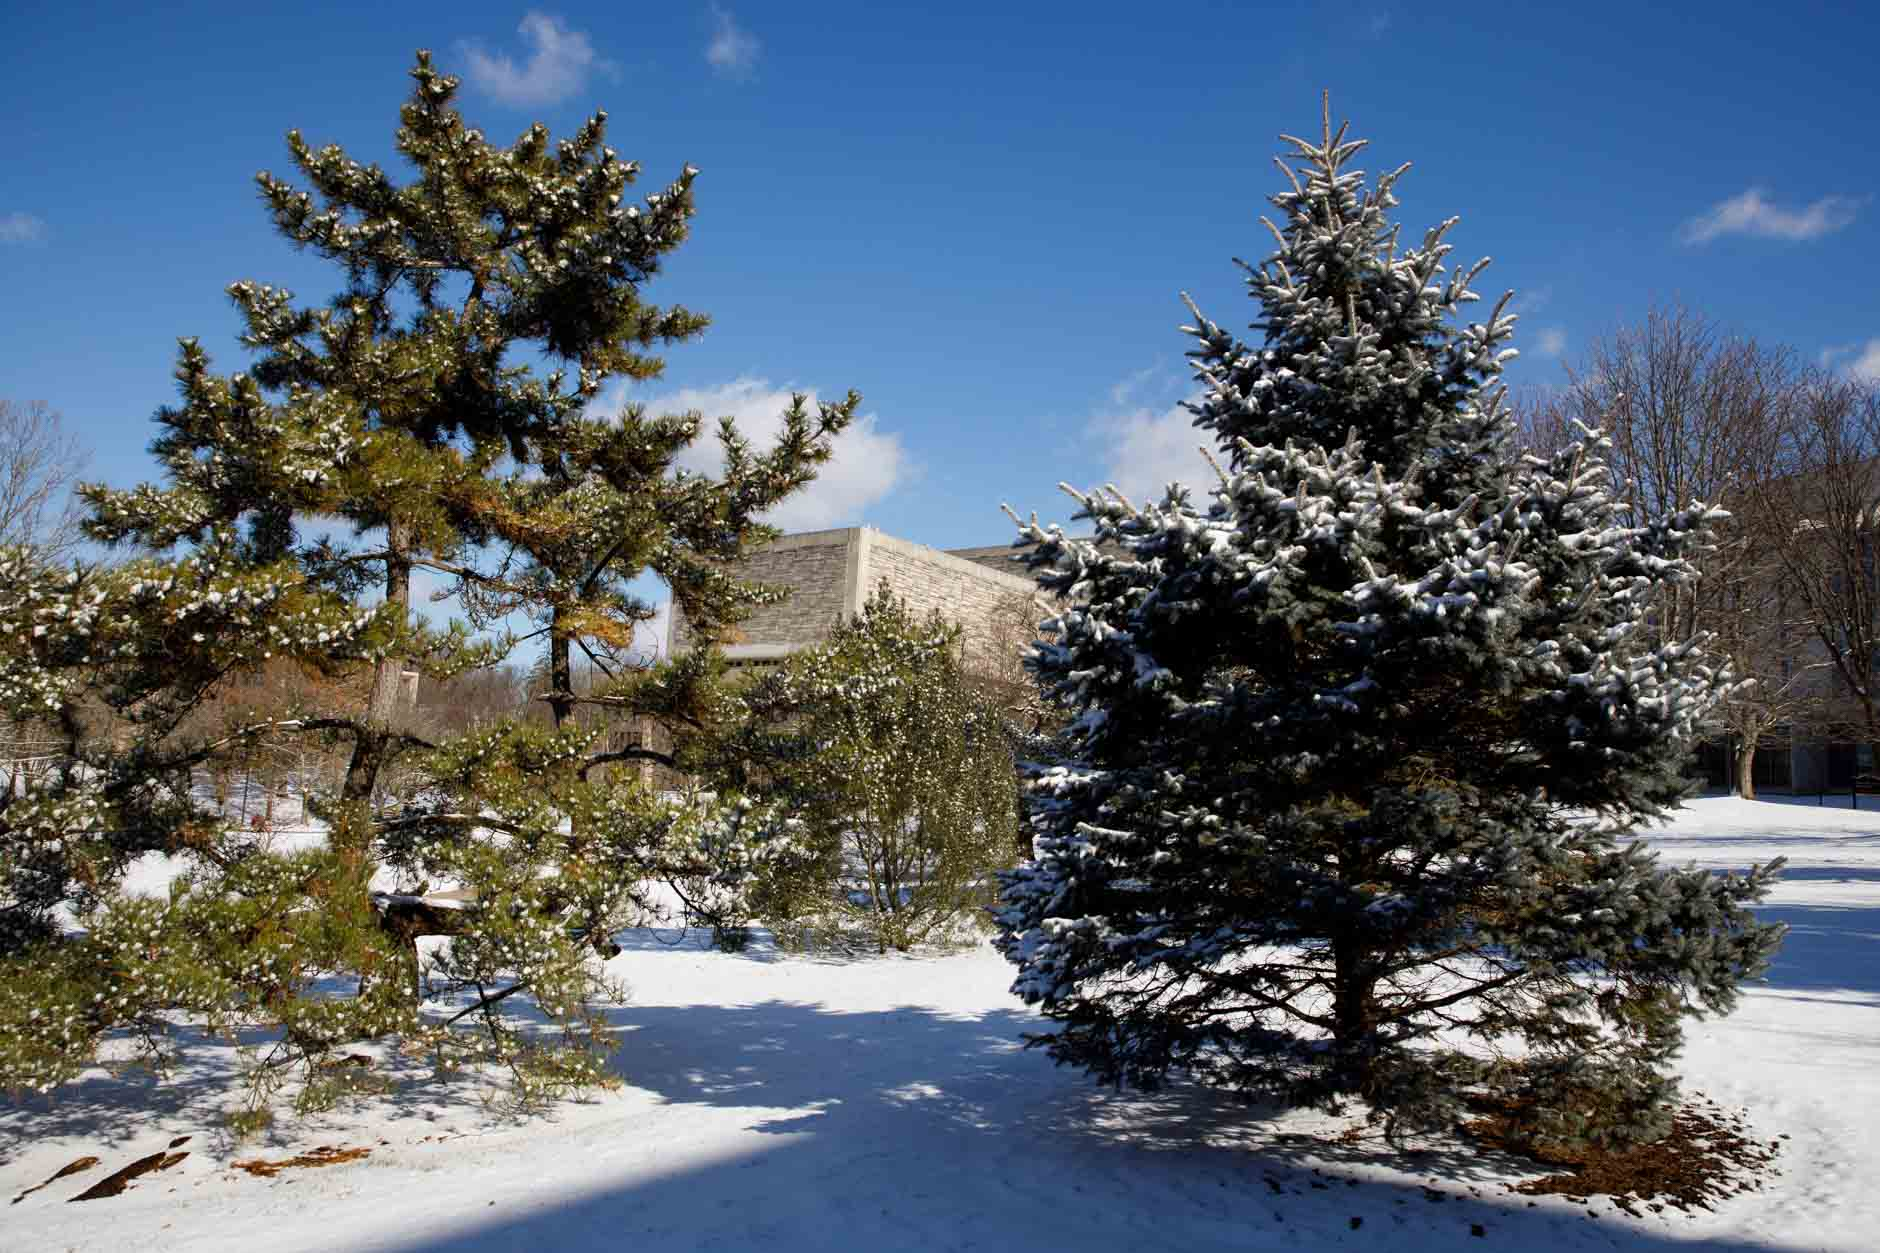 Snow covers trees in the Cox Arboretum on a winter day at Indiana University Bloomington on Thursday, Jan. 28, 2021. Pictured in the distance is the Wells Library. (James Brosher/Indiana University)